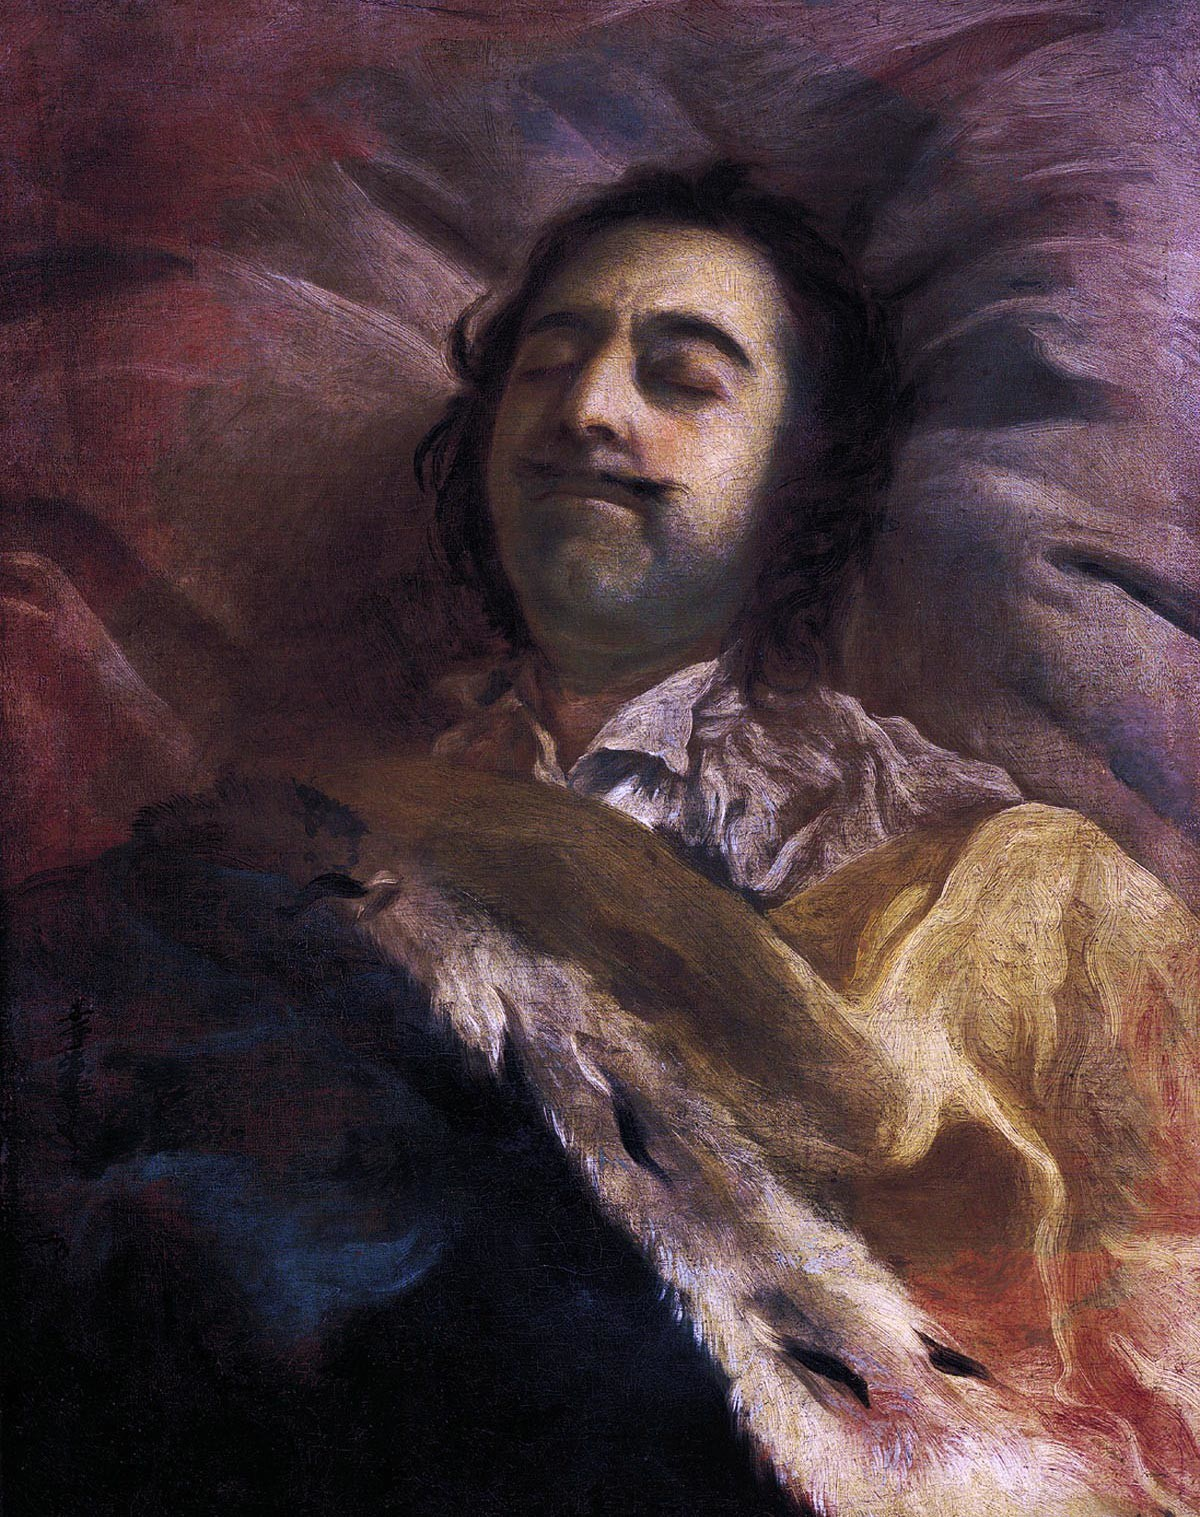 'Peter the Great on his deathbed,' by Ivan Nikitin